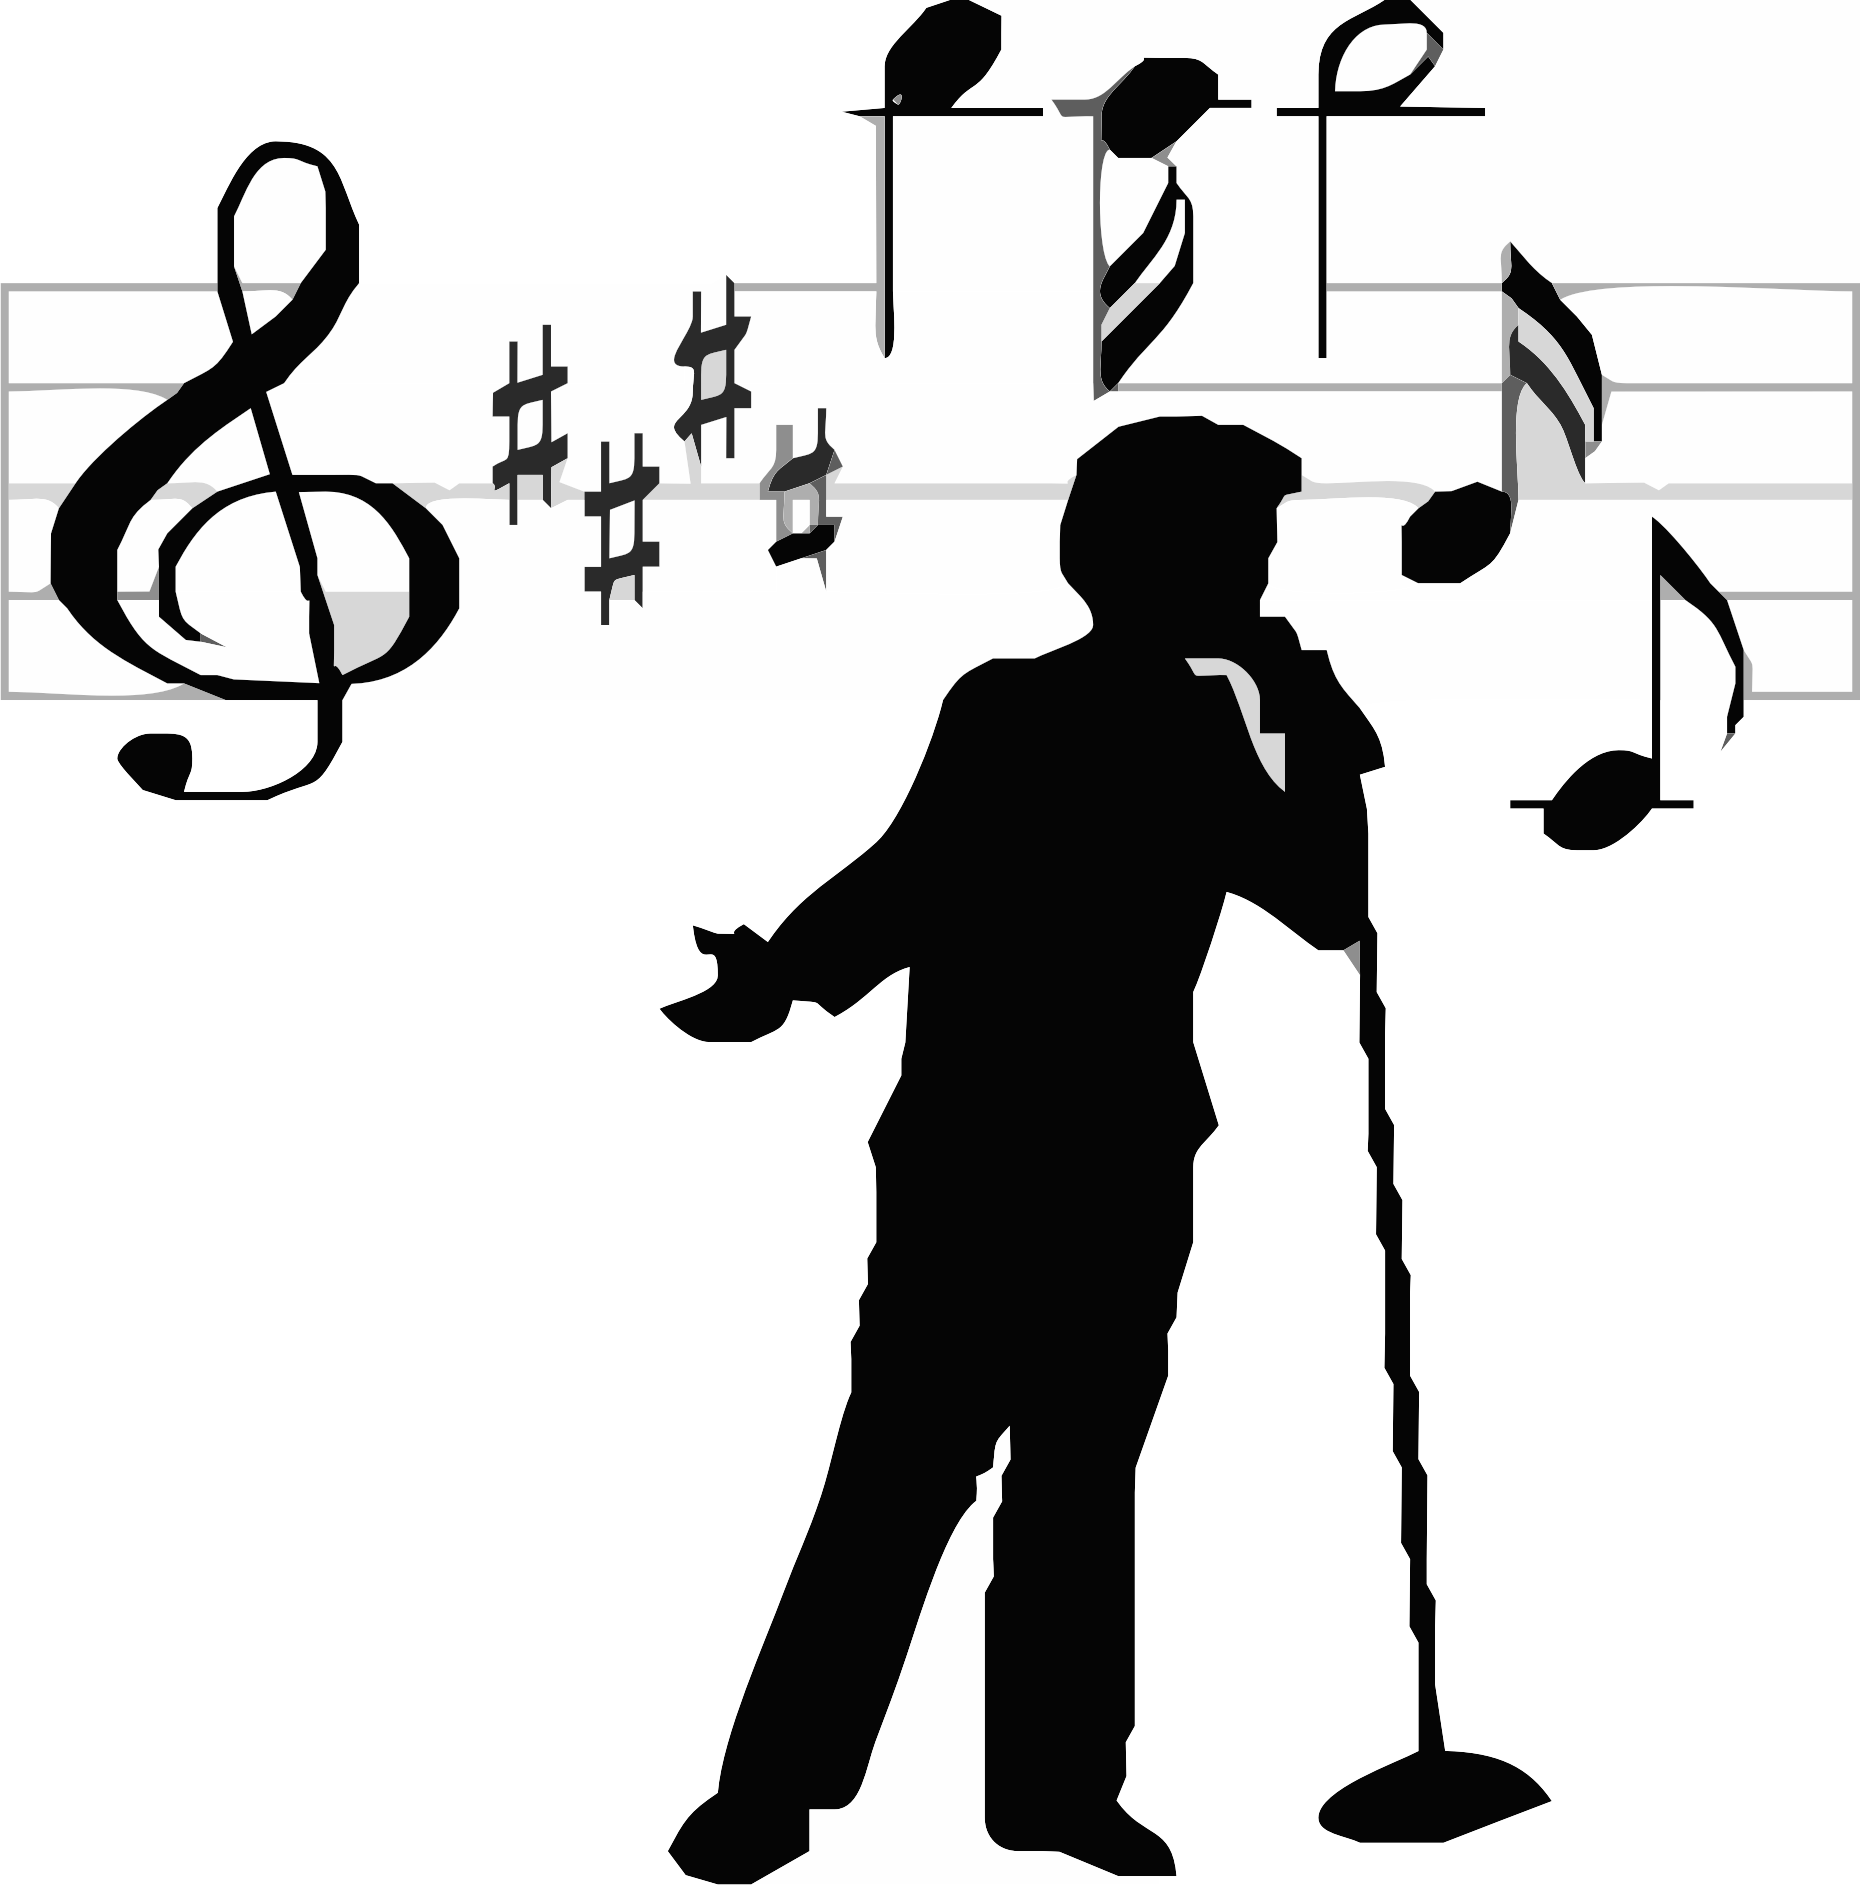 File:Singer icon transparent.png - PNG Singing Black And White